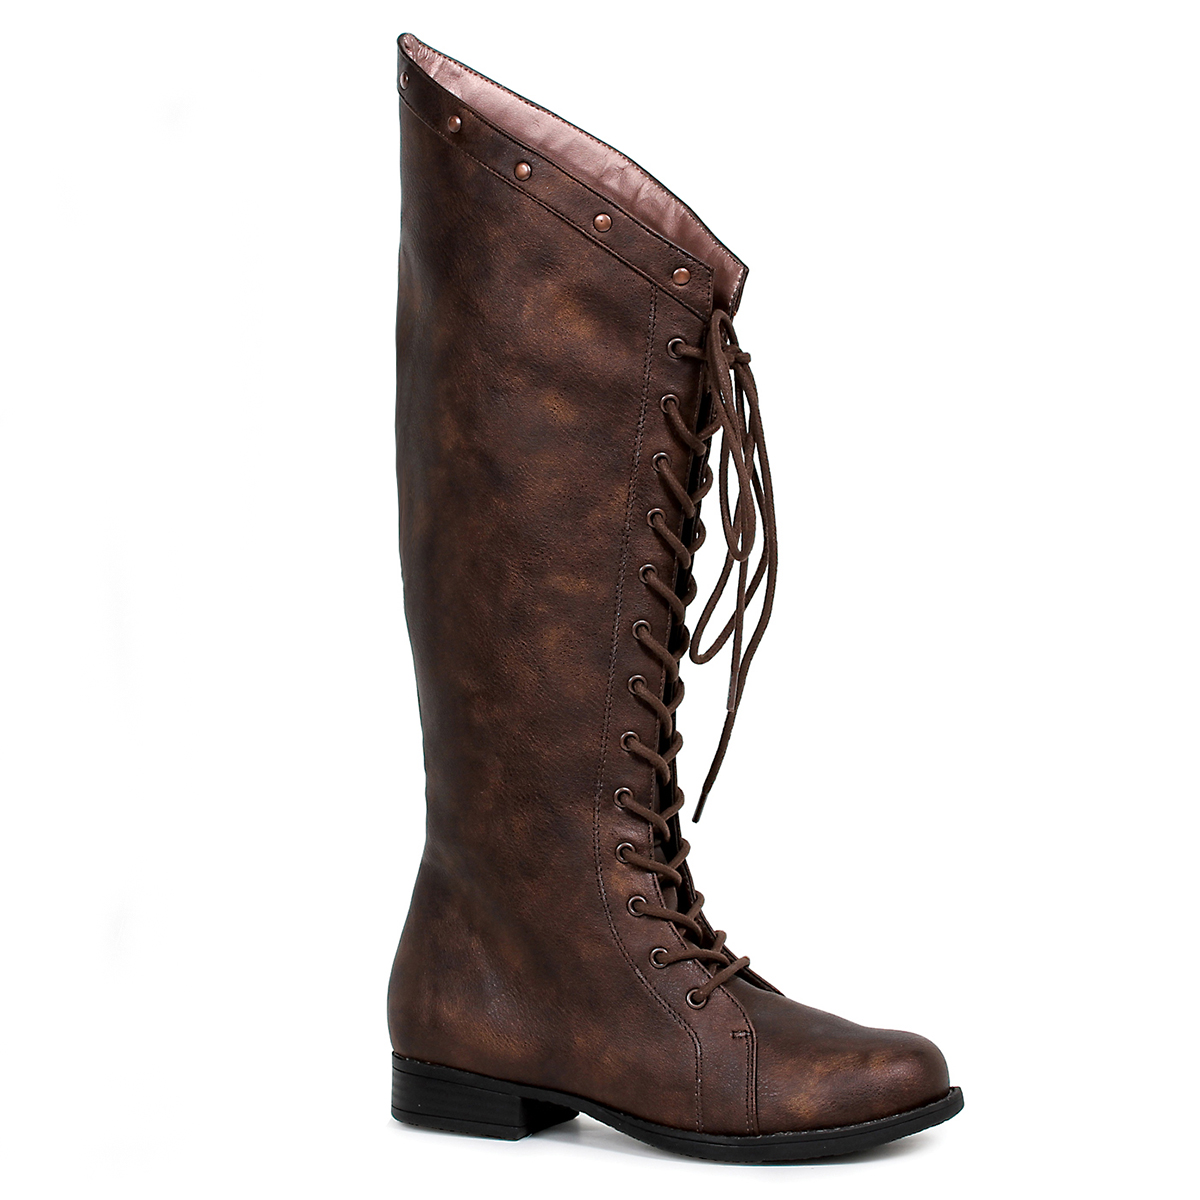 02bd7dc8a9141 Ellie Women's Brown Huntress Knee High Costume Boot Lace-up ...